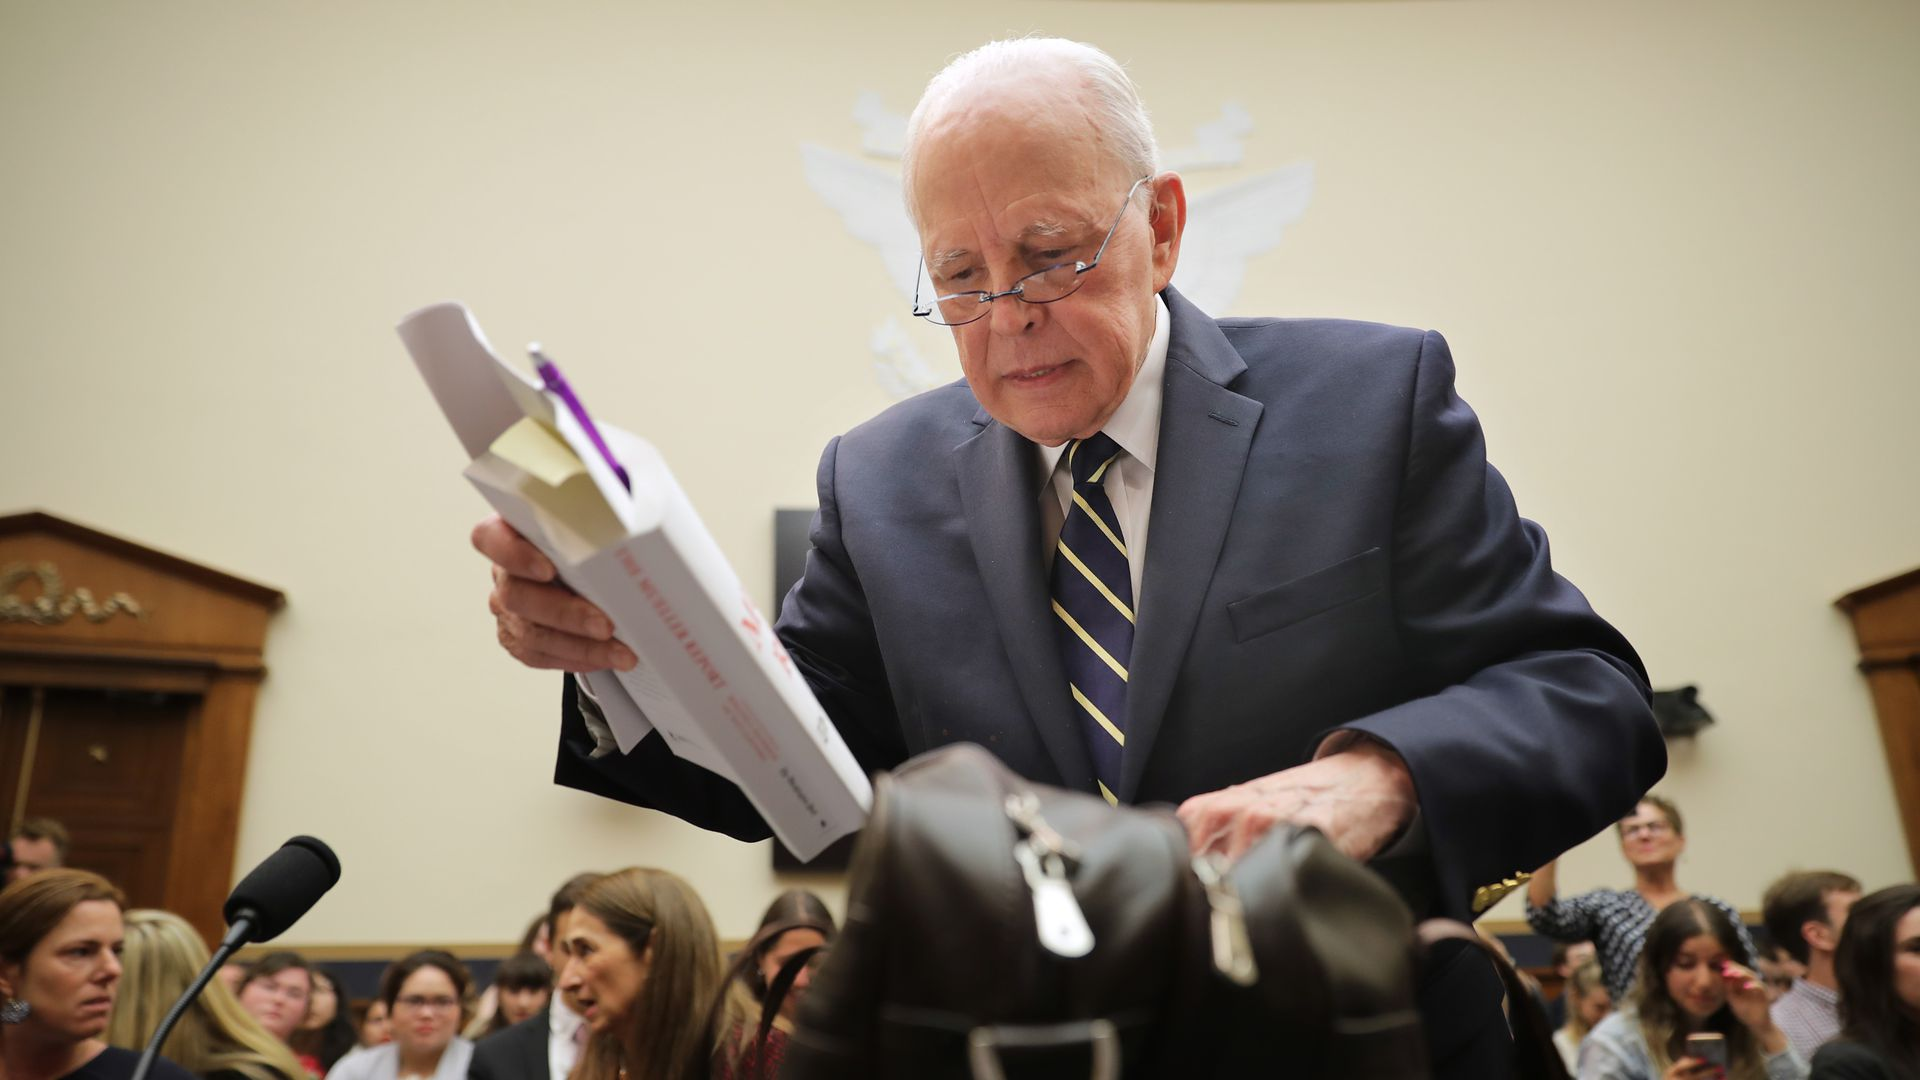 Former Nixon counsel John Dean draws 6 parallels between Mueller report and Watergate